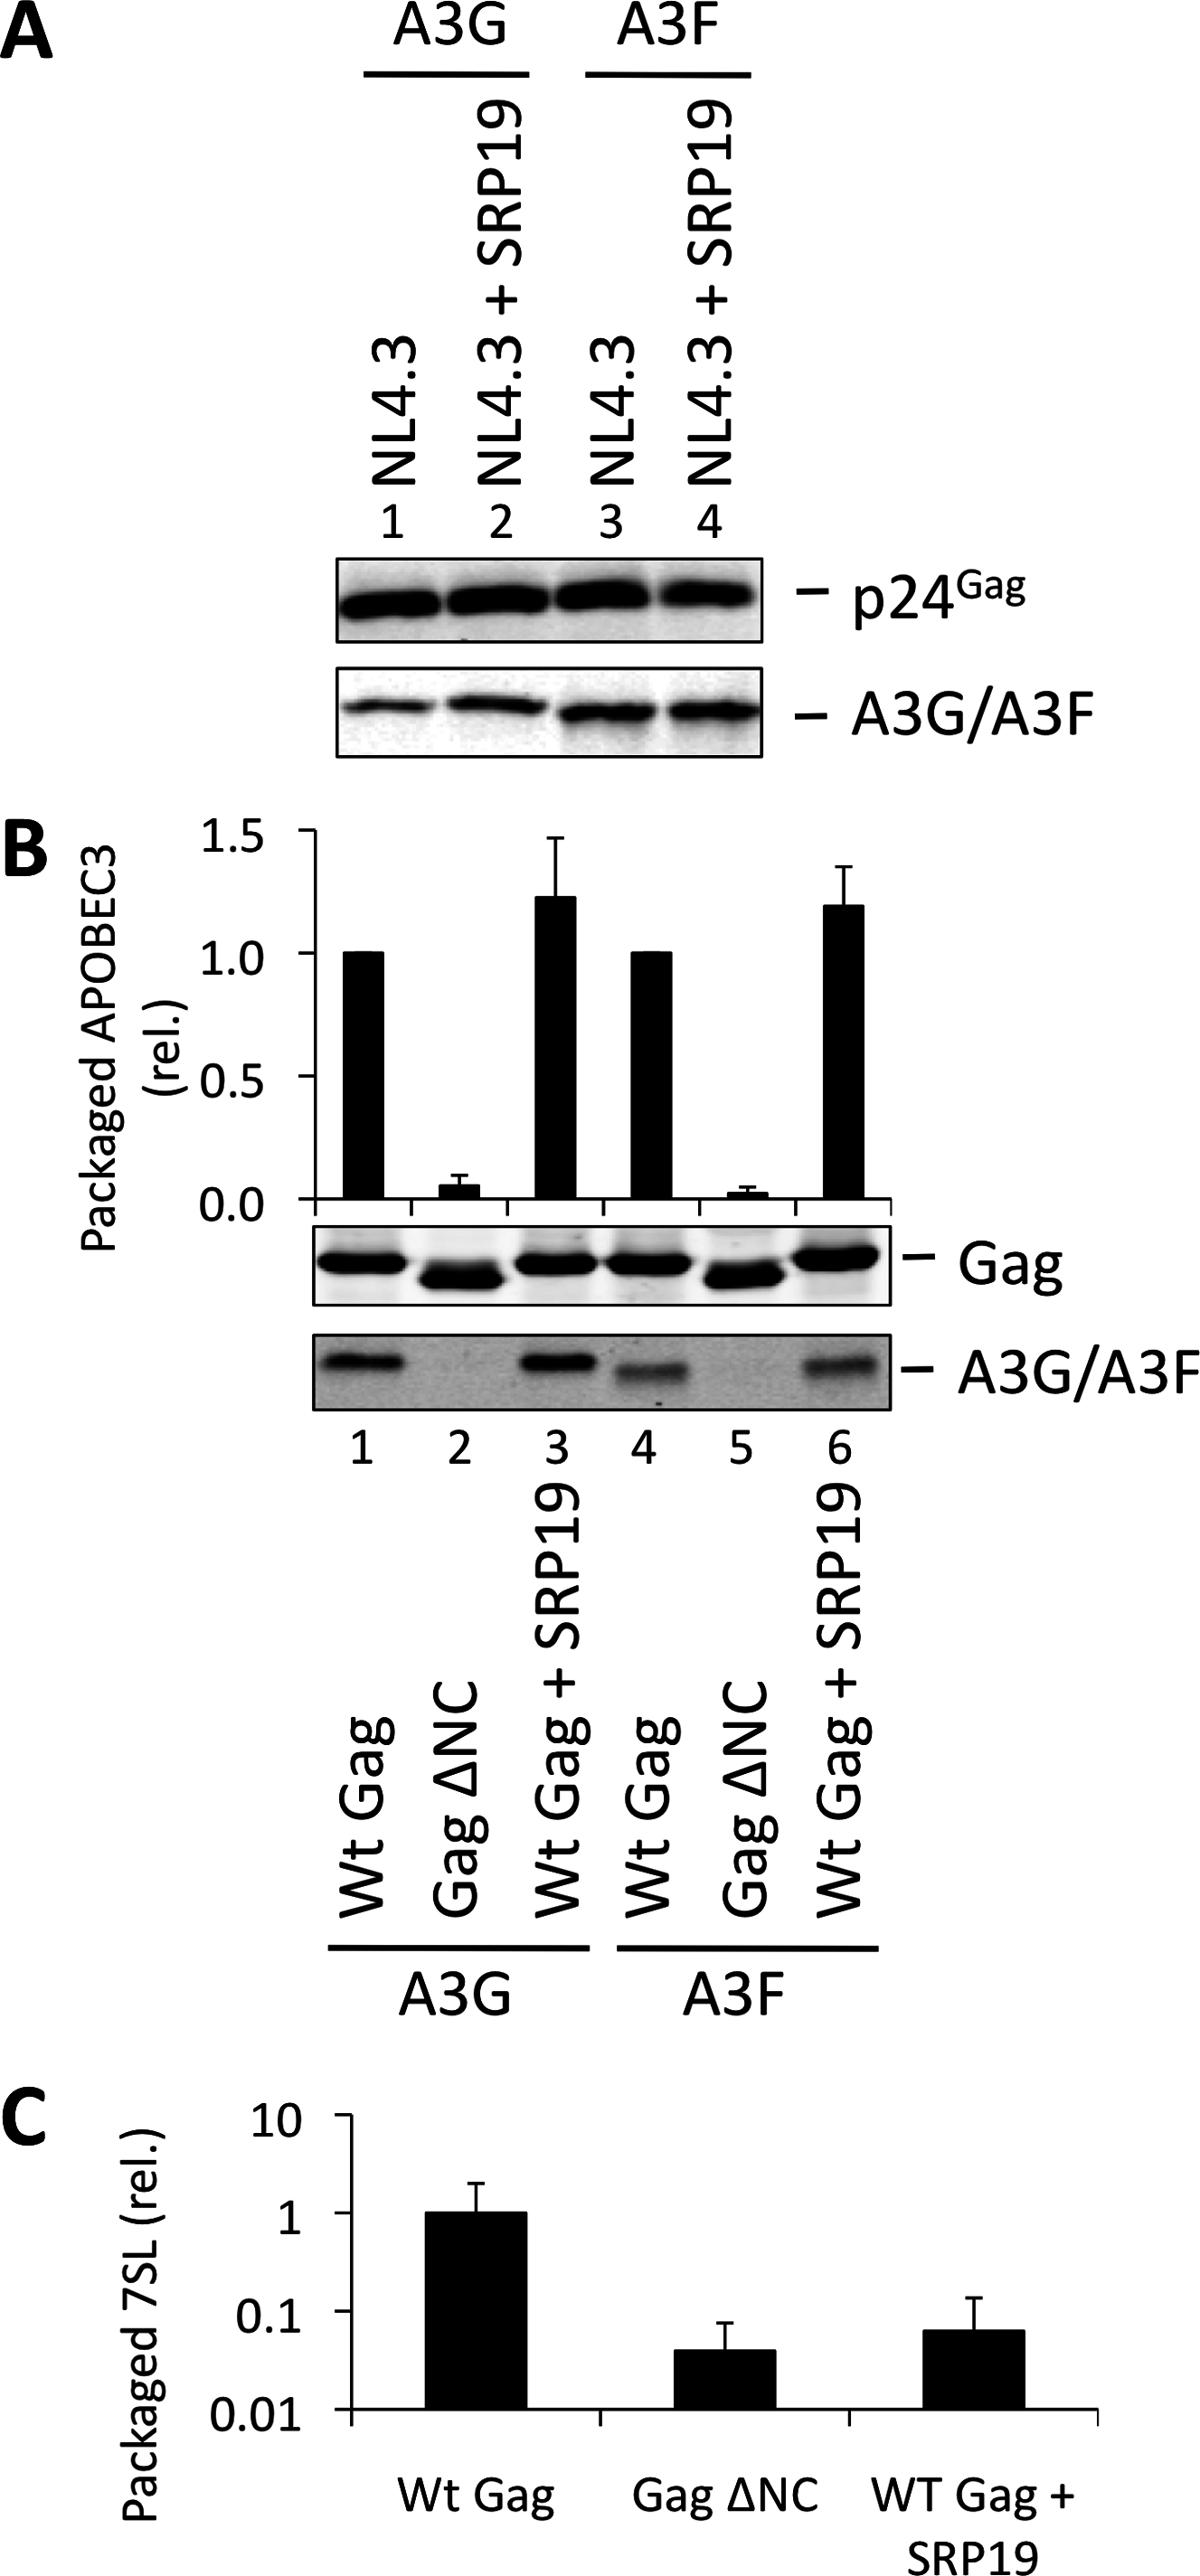 VLPs with reduced 7SL RNA content package A3G and A3F. (A)